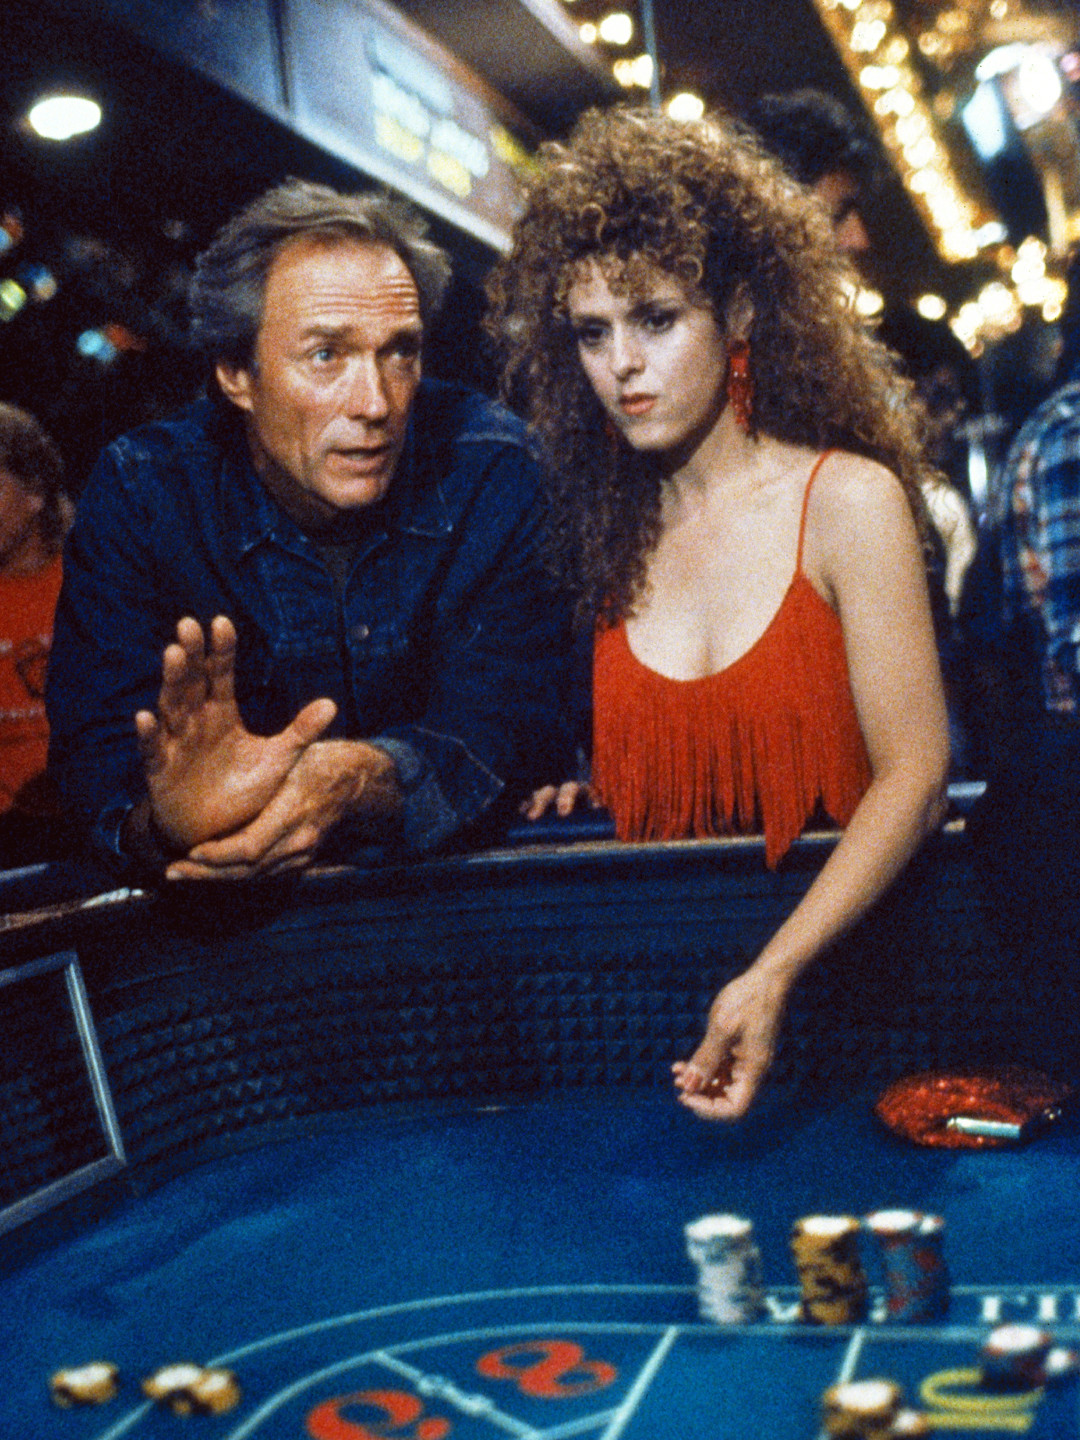 man and woman in casino in Pink Cadillac